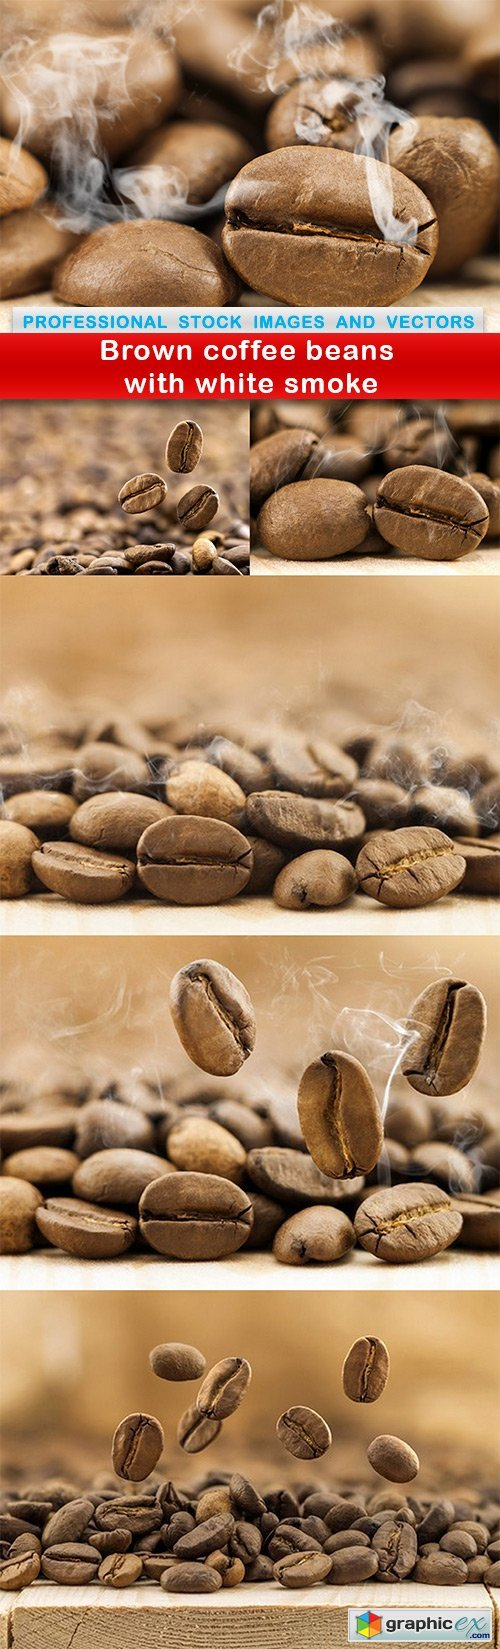 Brown coffee beans with white smoke - 6 UHQ JPEG